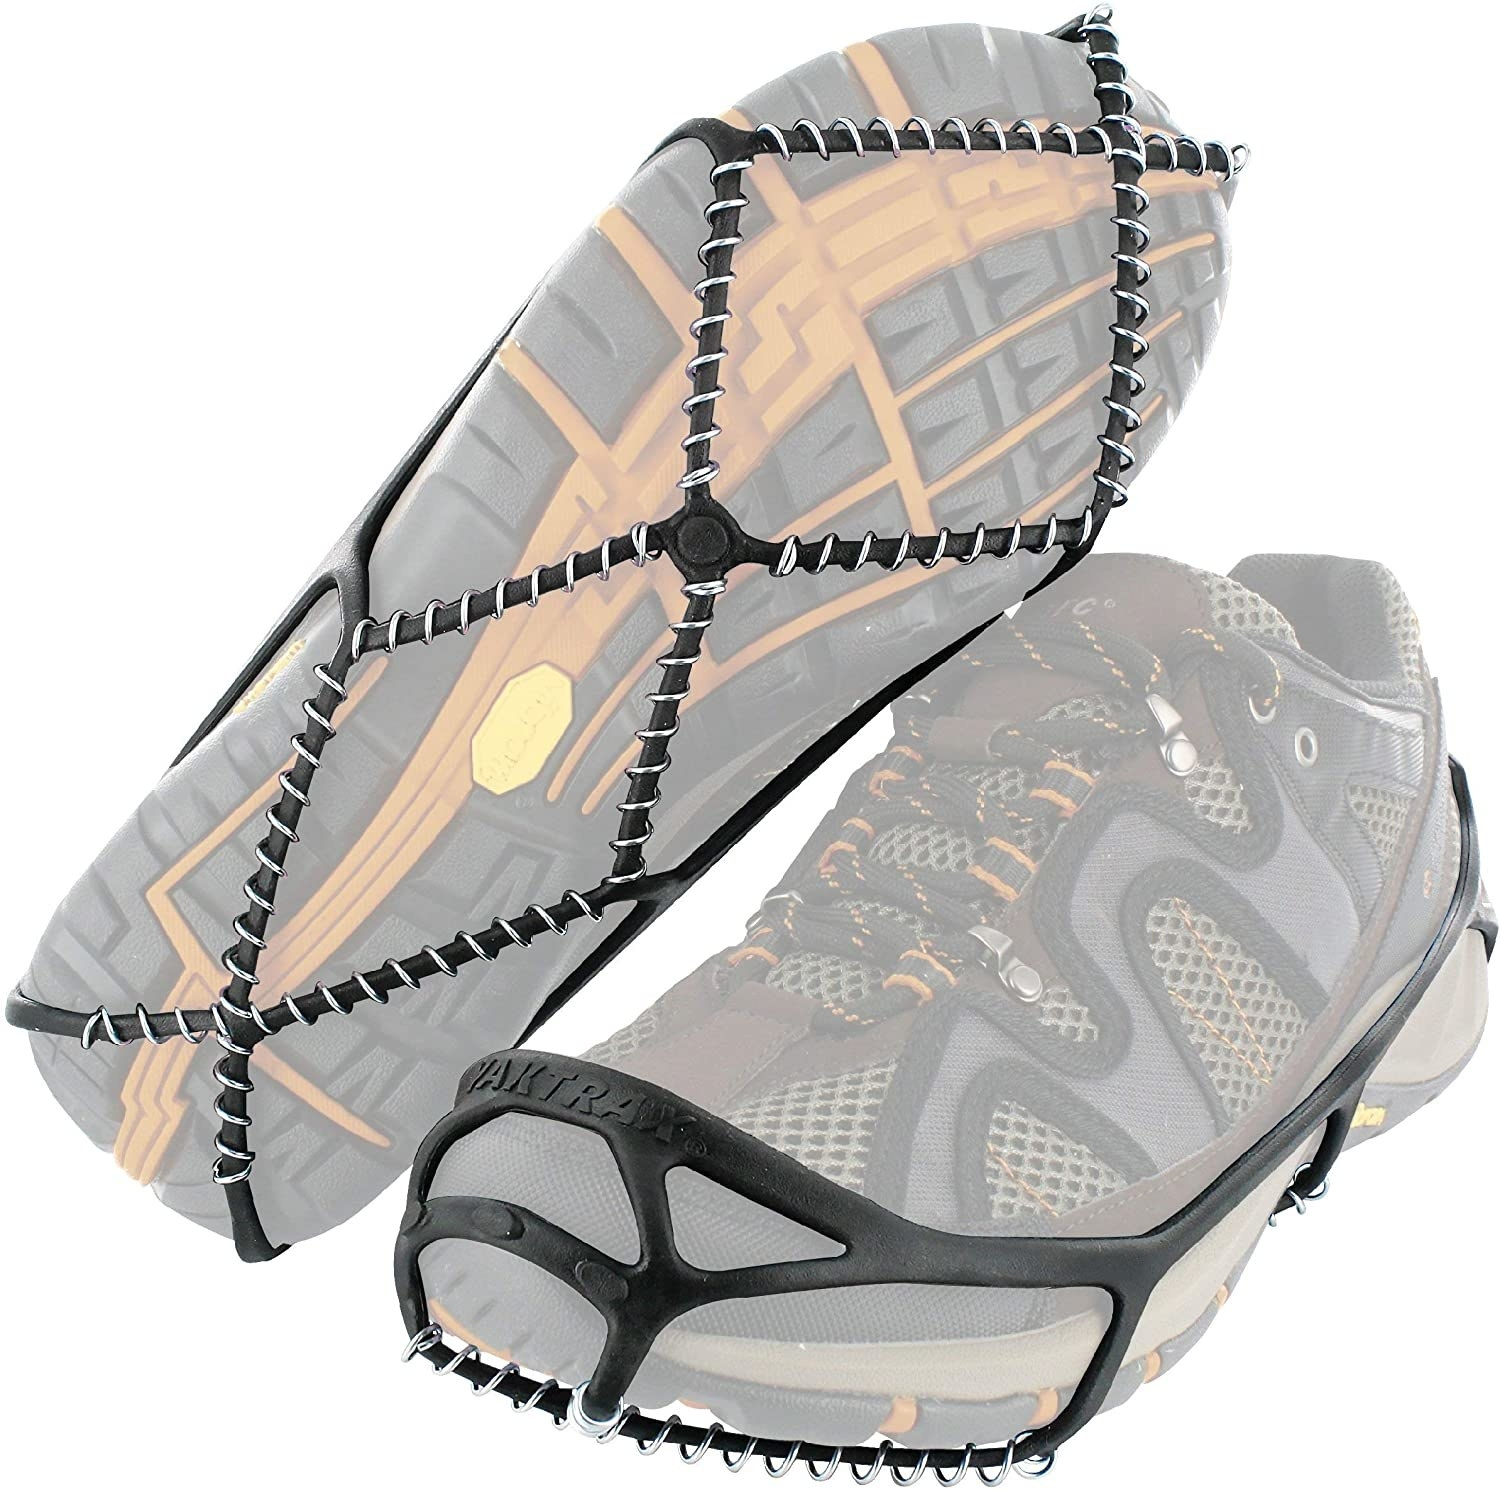 the attachable traction cleats